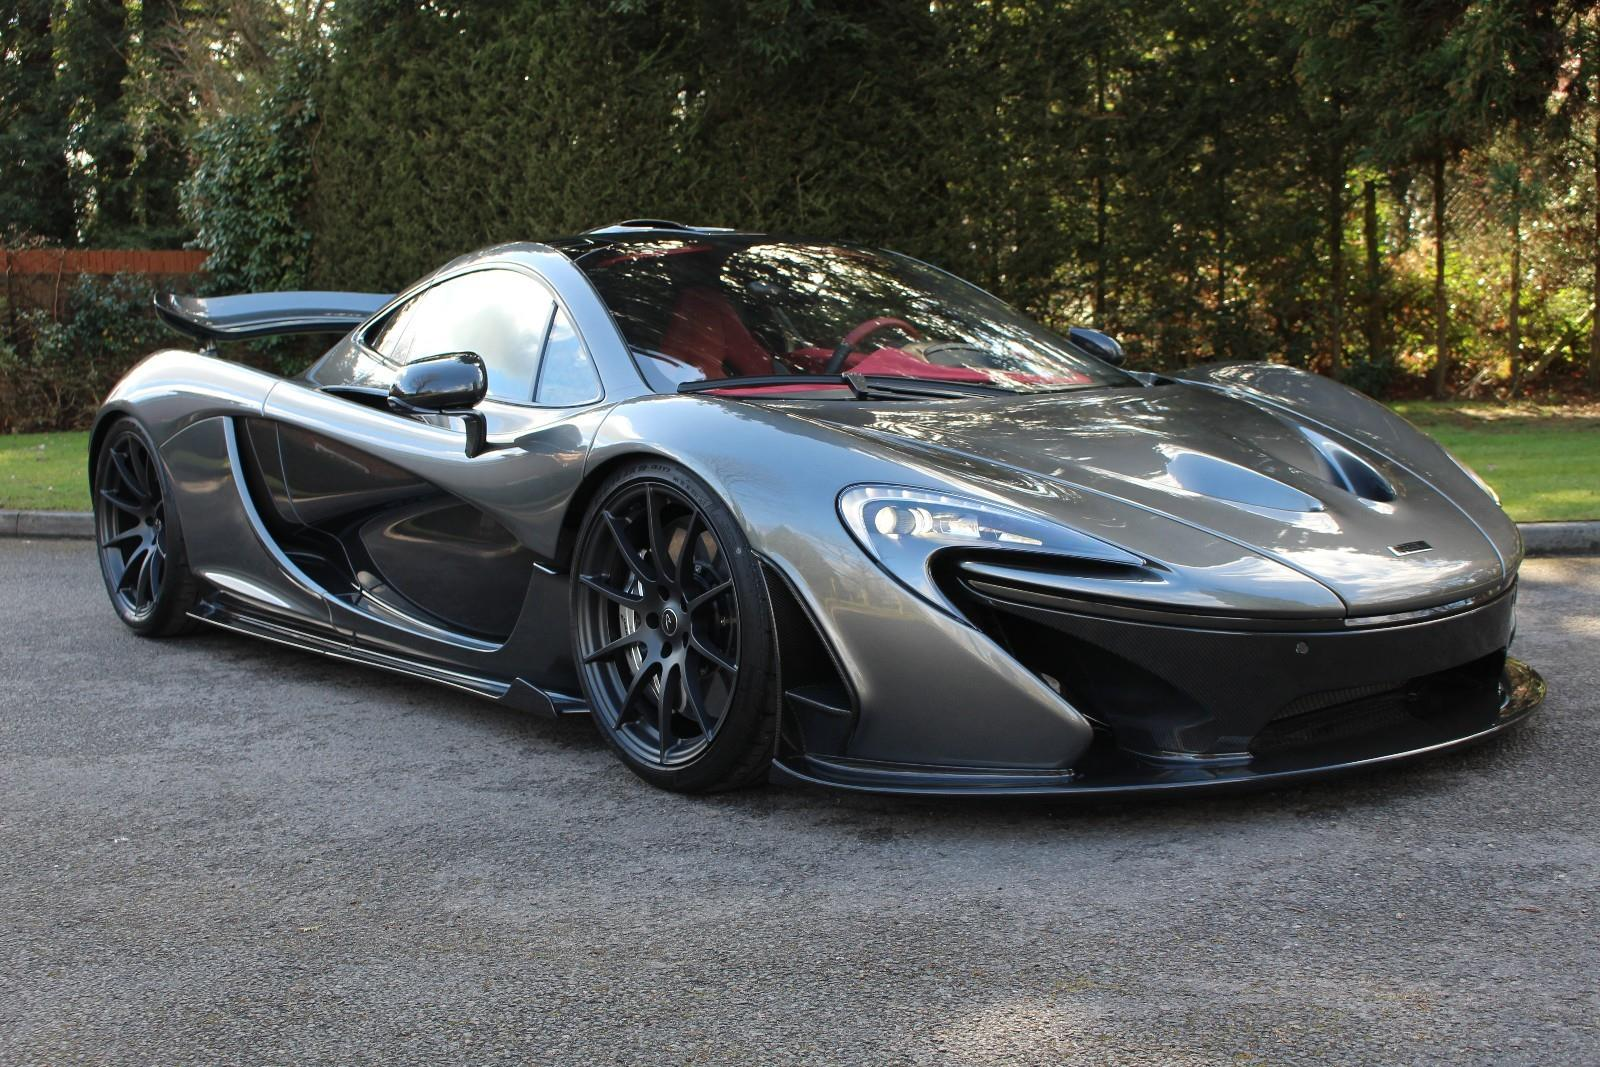 Mso Kilo Grey Mclaren P1 For Sale At 163 1 700 000 In The Uk